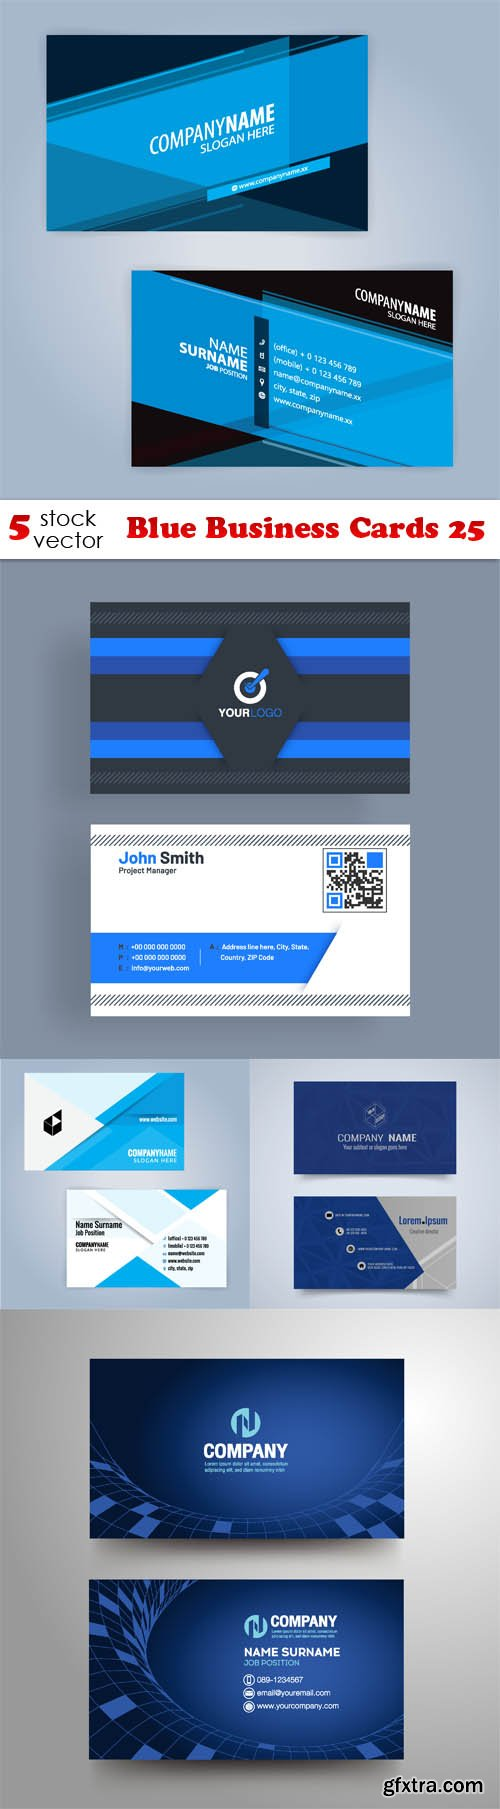 Vectors - Blue Business Cards 25